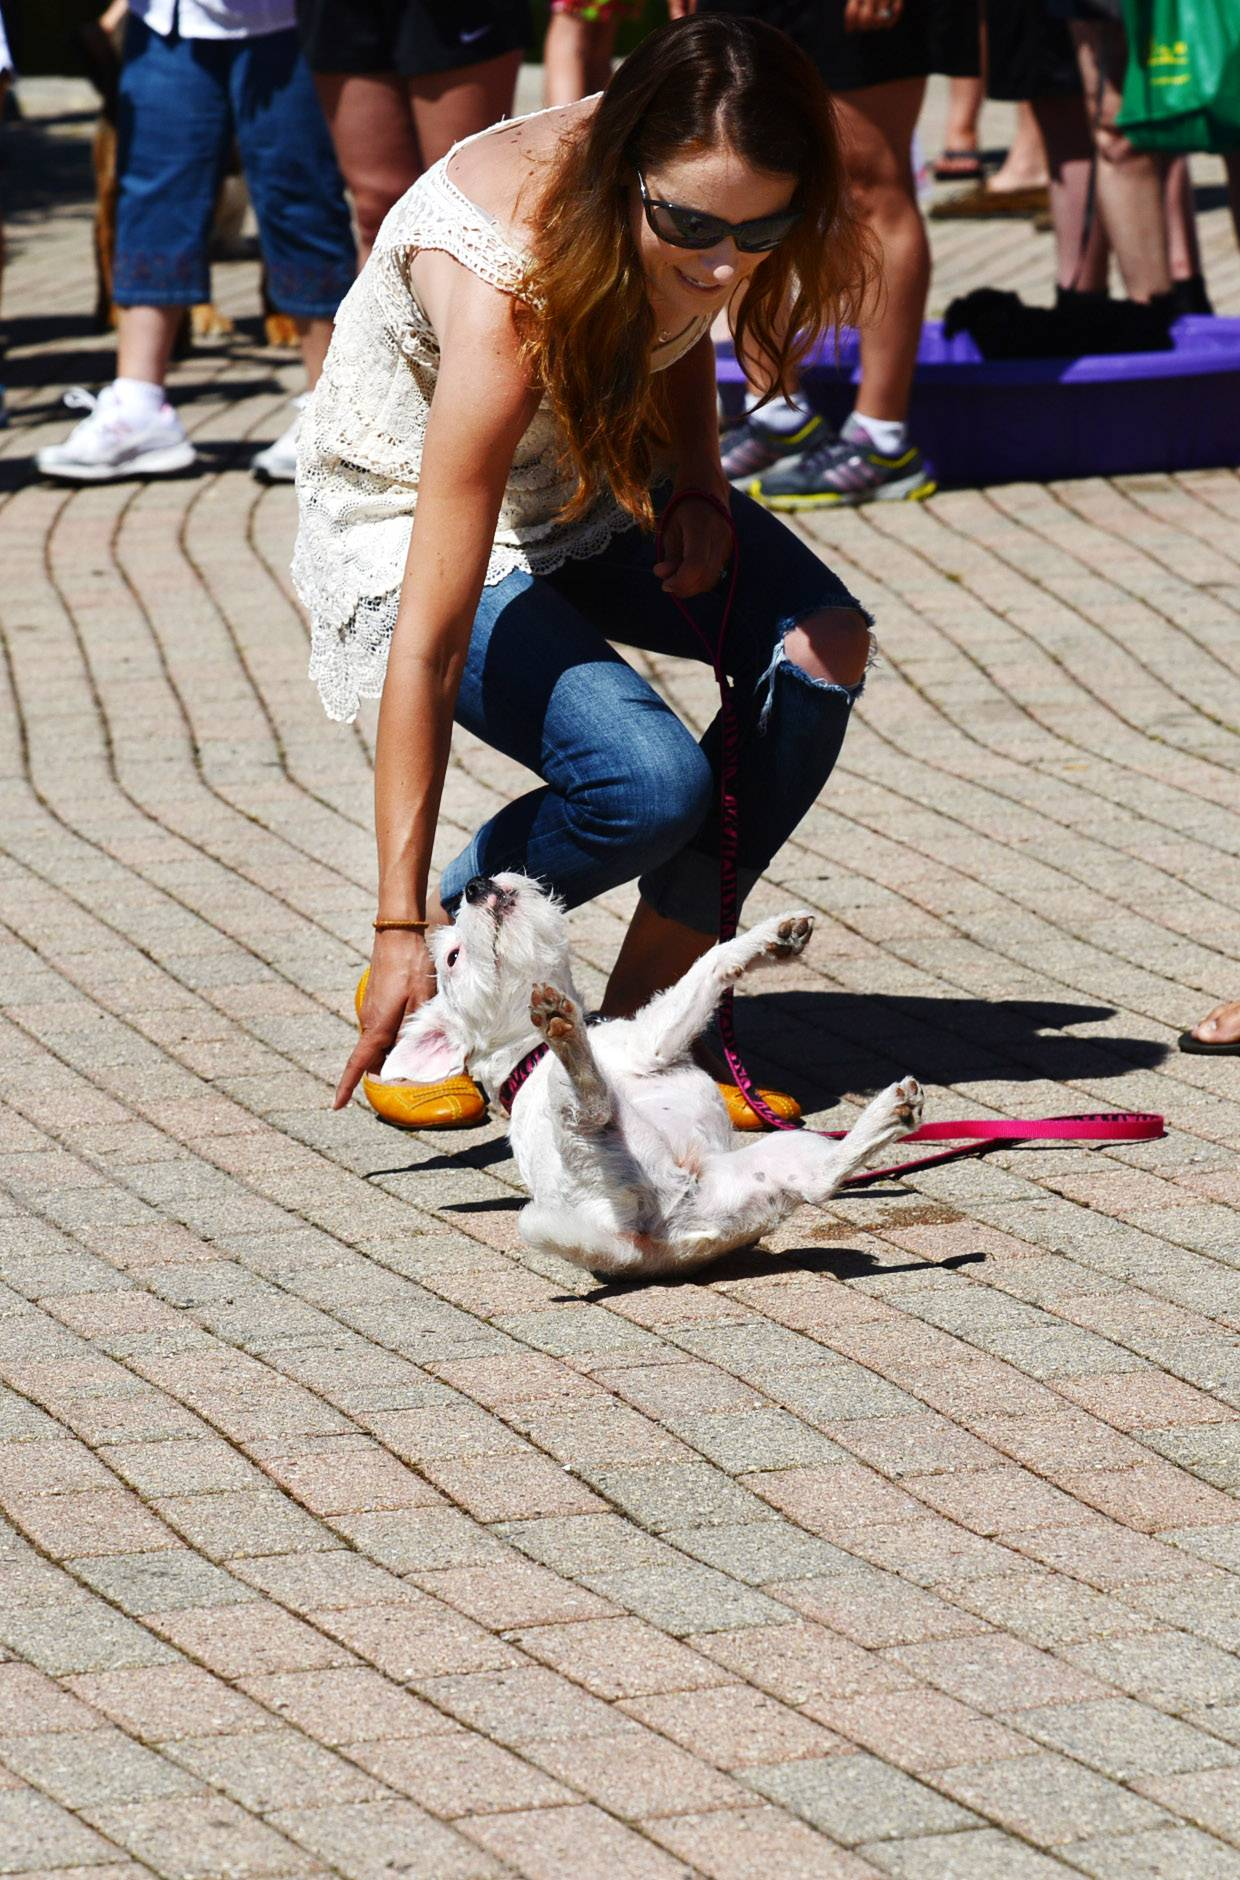 Aspen, a Jack Russell Terrier puppy, rolls over for owner Jenny Bradley of Batavia at a previous Windmill City Festival. The festival's pet parade is one of its most popular events, organizers say.